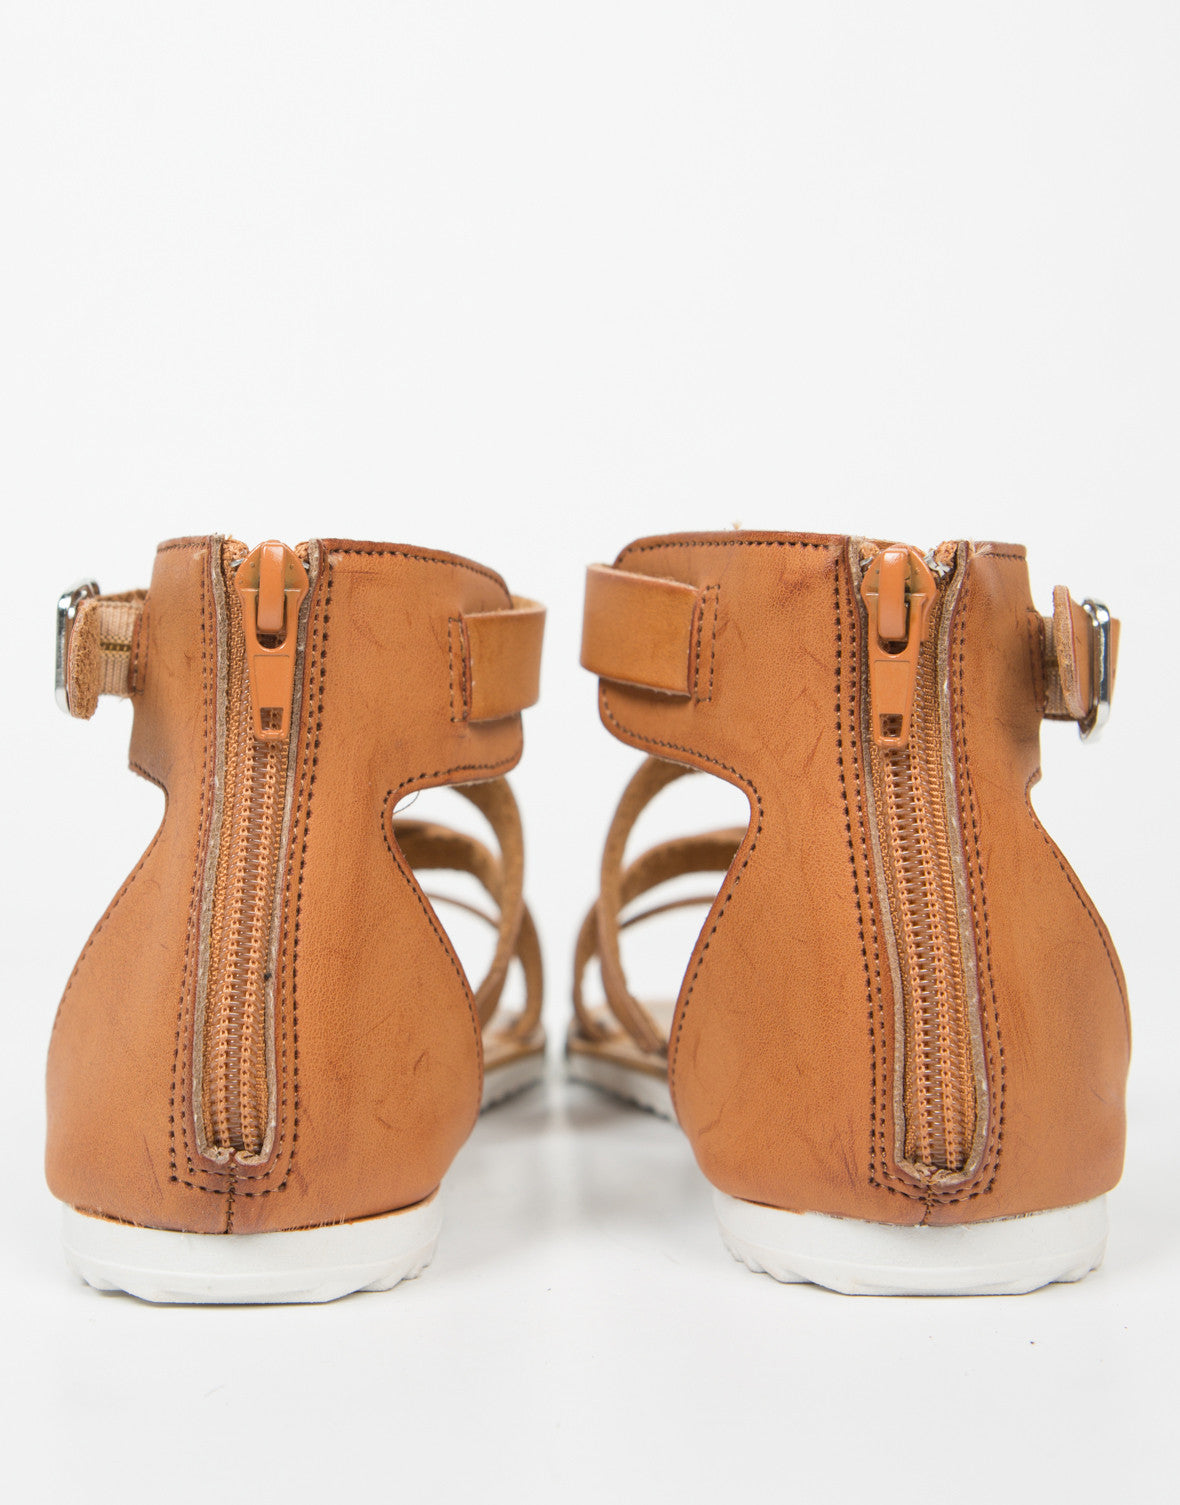 Back View of Strappy Contrast Buckled Sandals